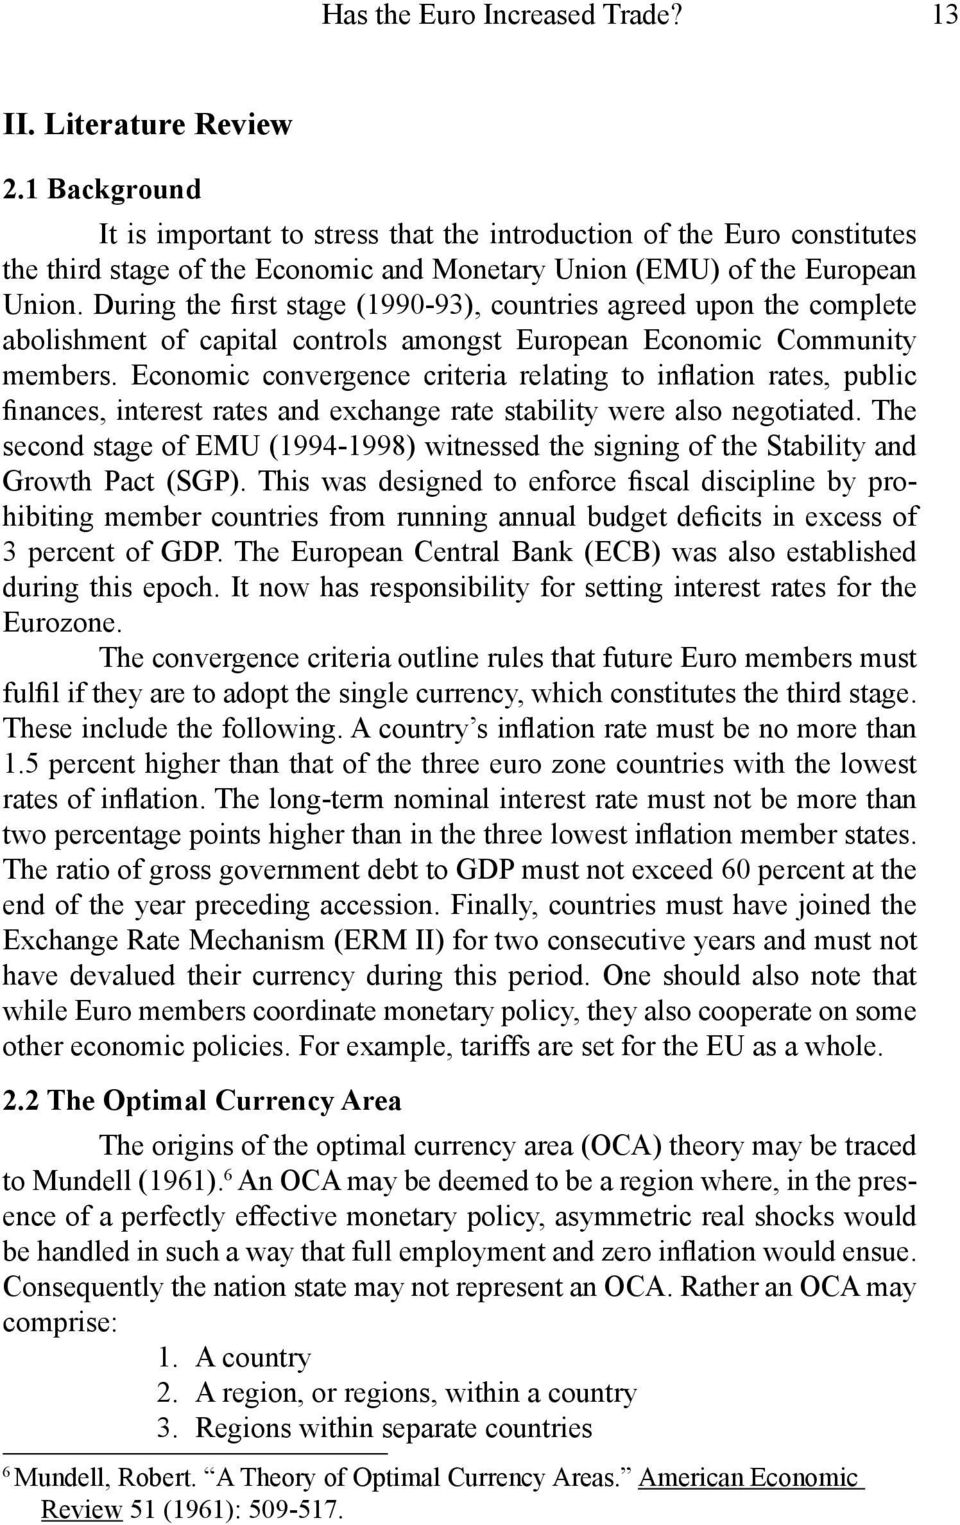 During the first stage (1990-93), countries agreed upon the complete abolishment of capital controls amongst European Economic Community members.